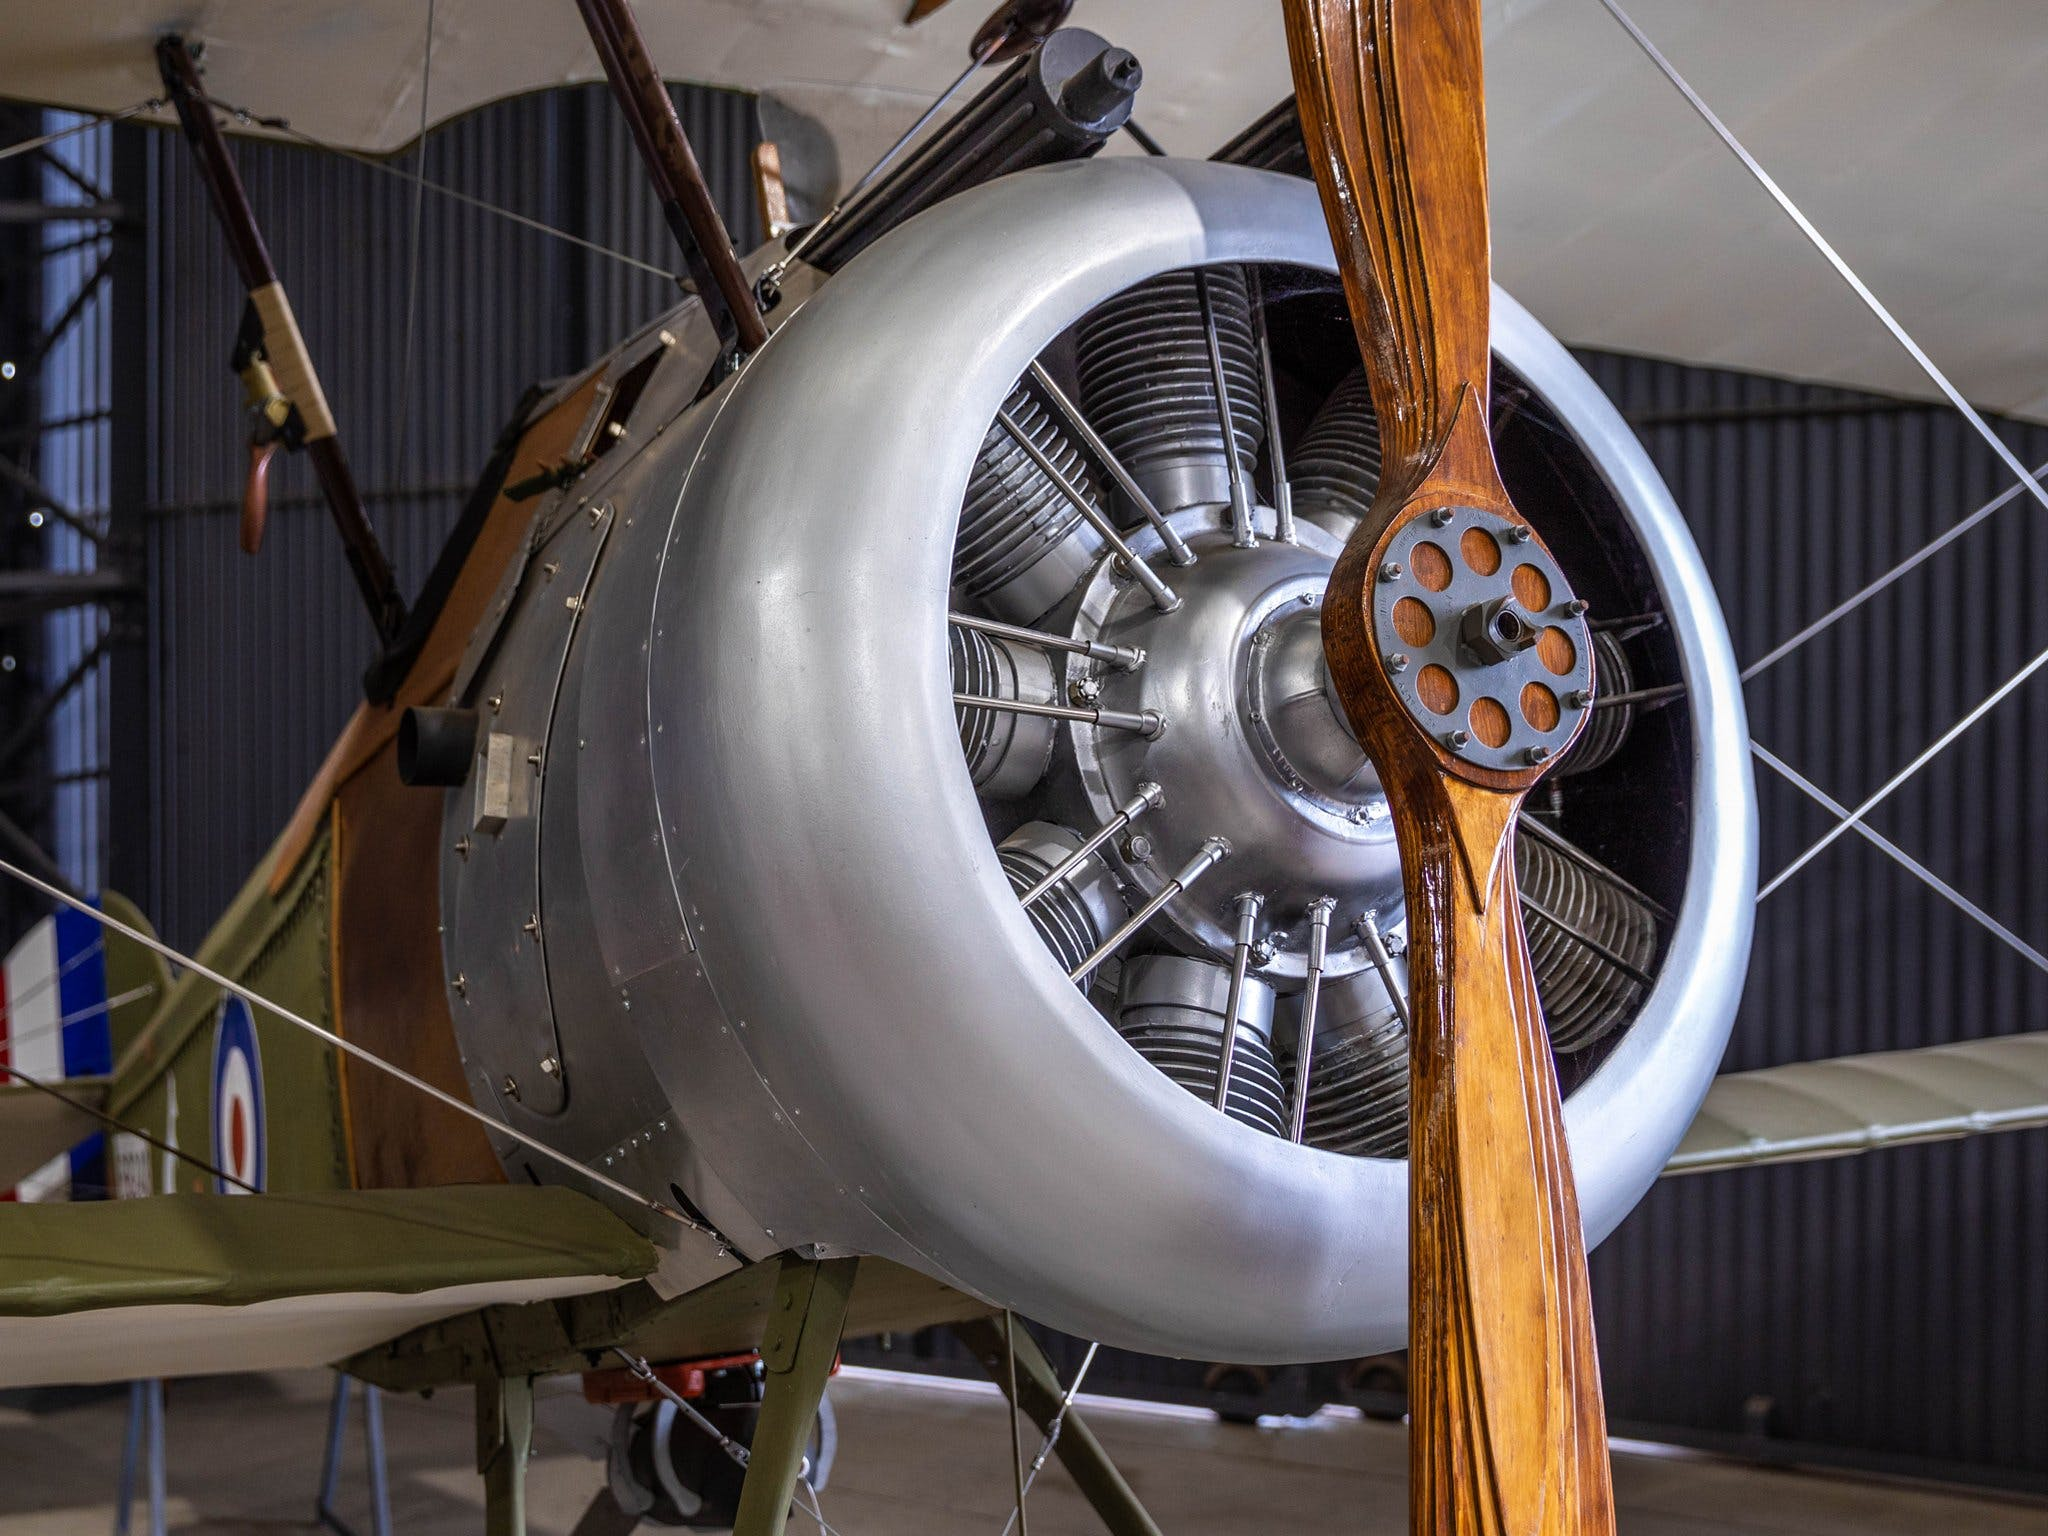 RAAF Amberley Aviation Heritage Centre - Tourism Gold Coast